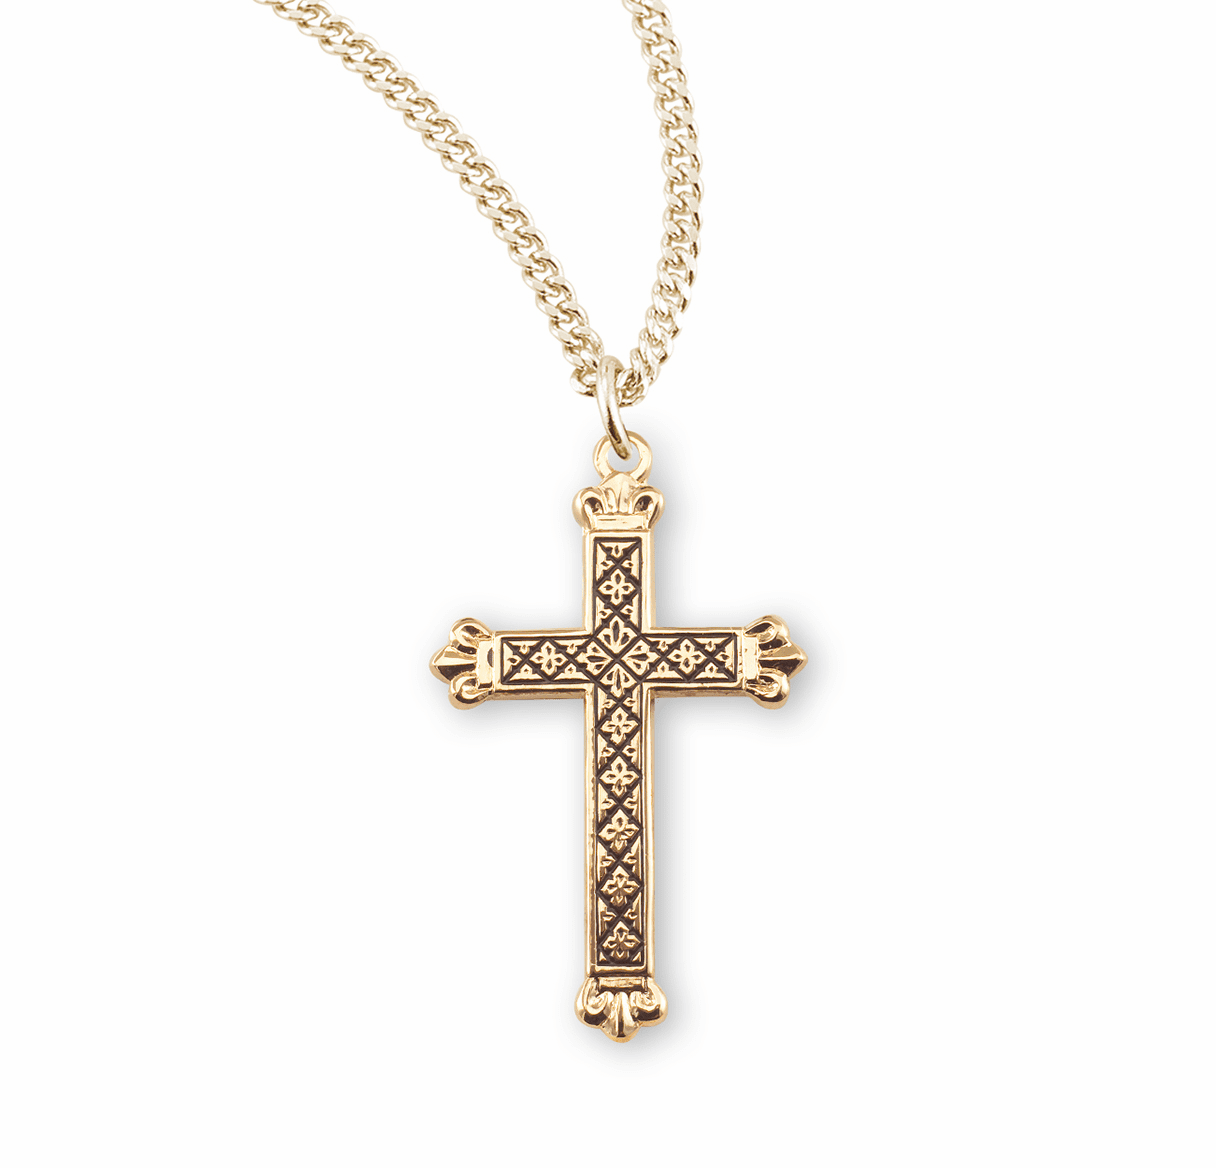 HMH Religious Black Enameled Crown Tipped Cross Necklace